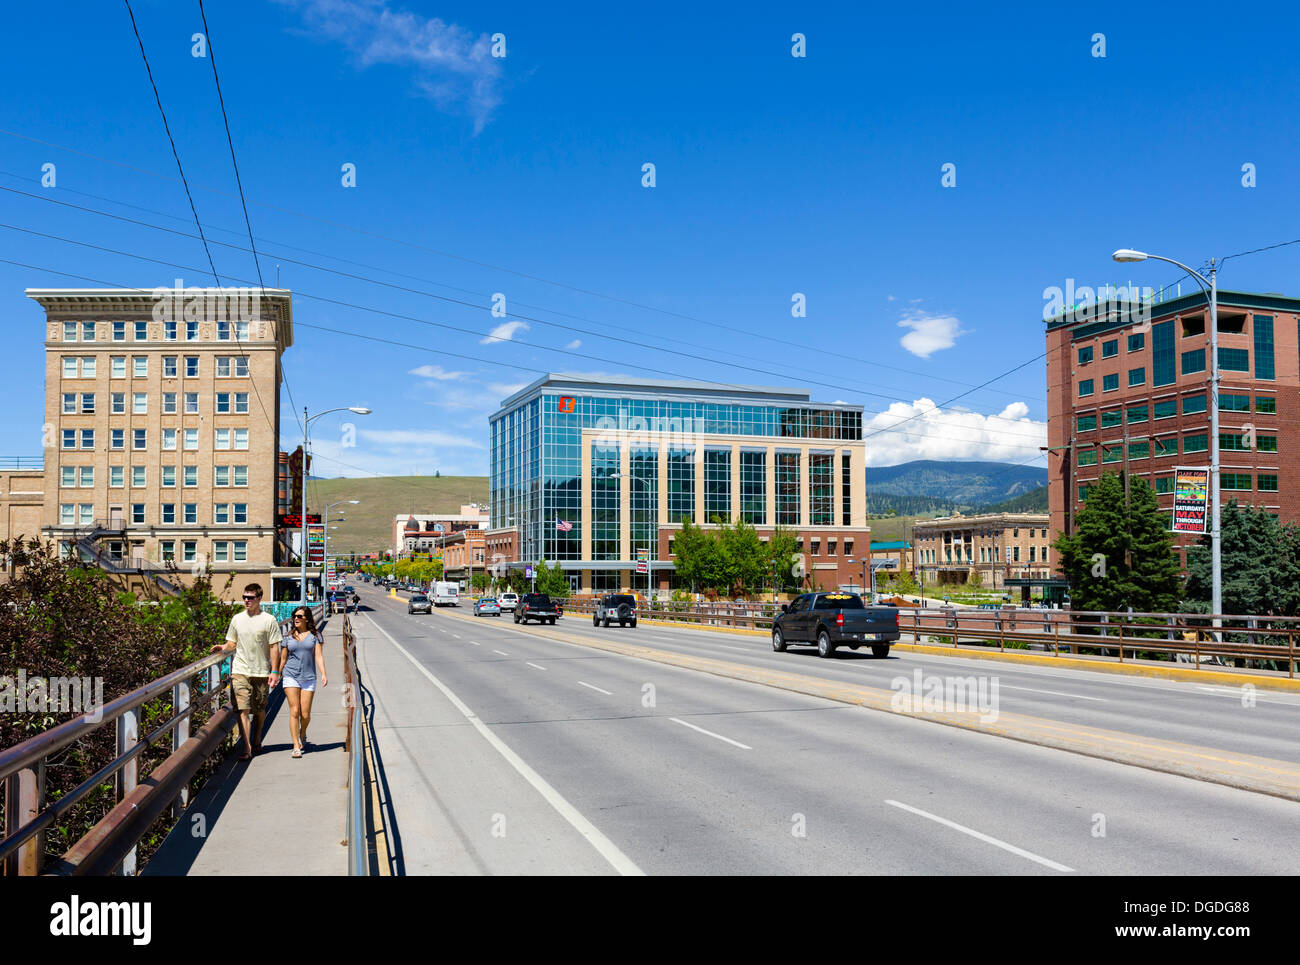 South Higgins Avenue bridge over the Clark Fork River in historic downtown Missoula, Montana, USA - Stock Image